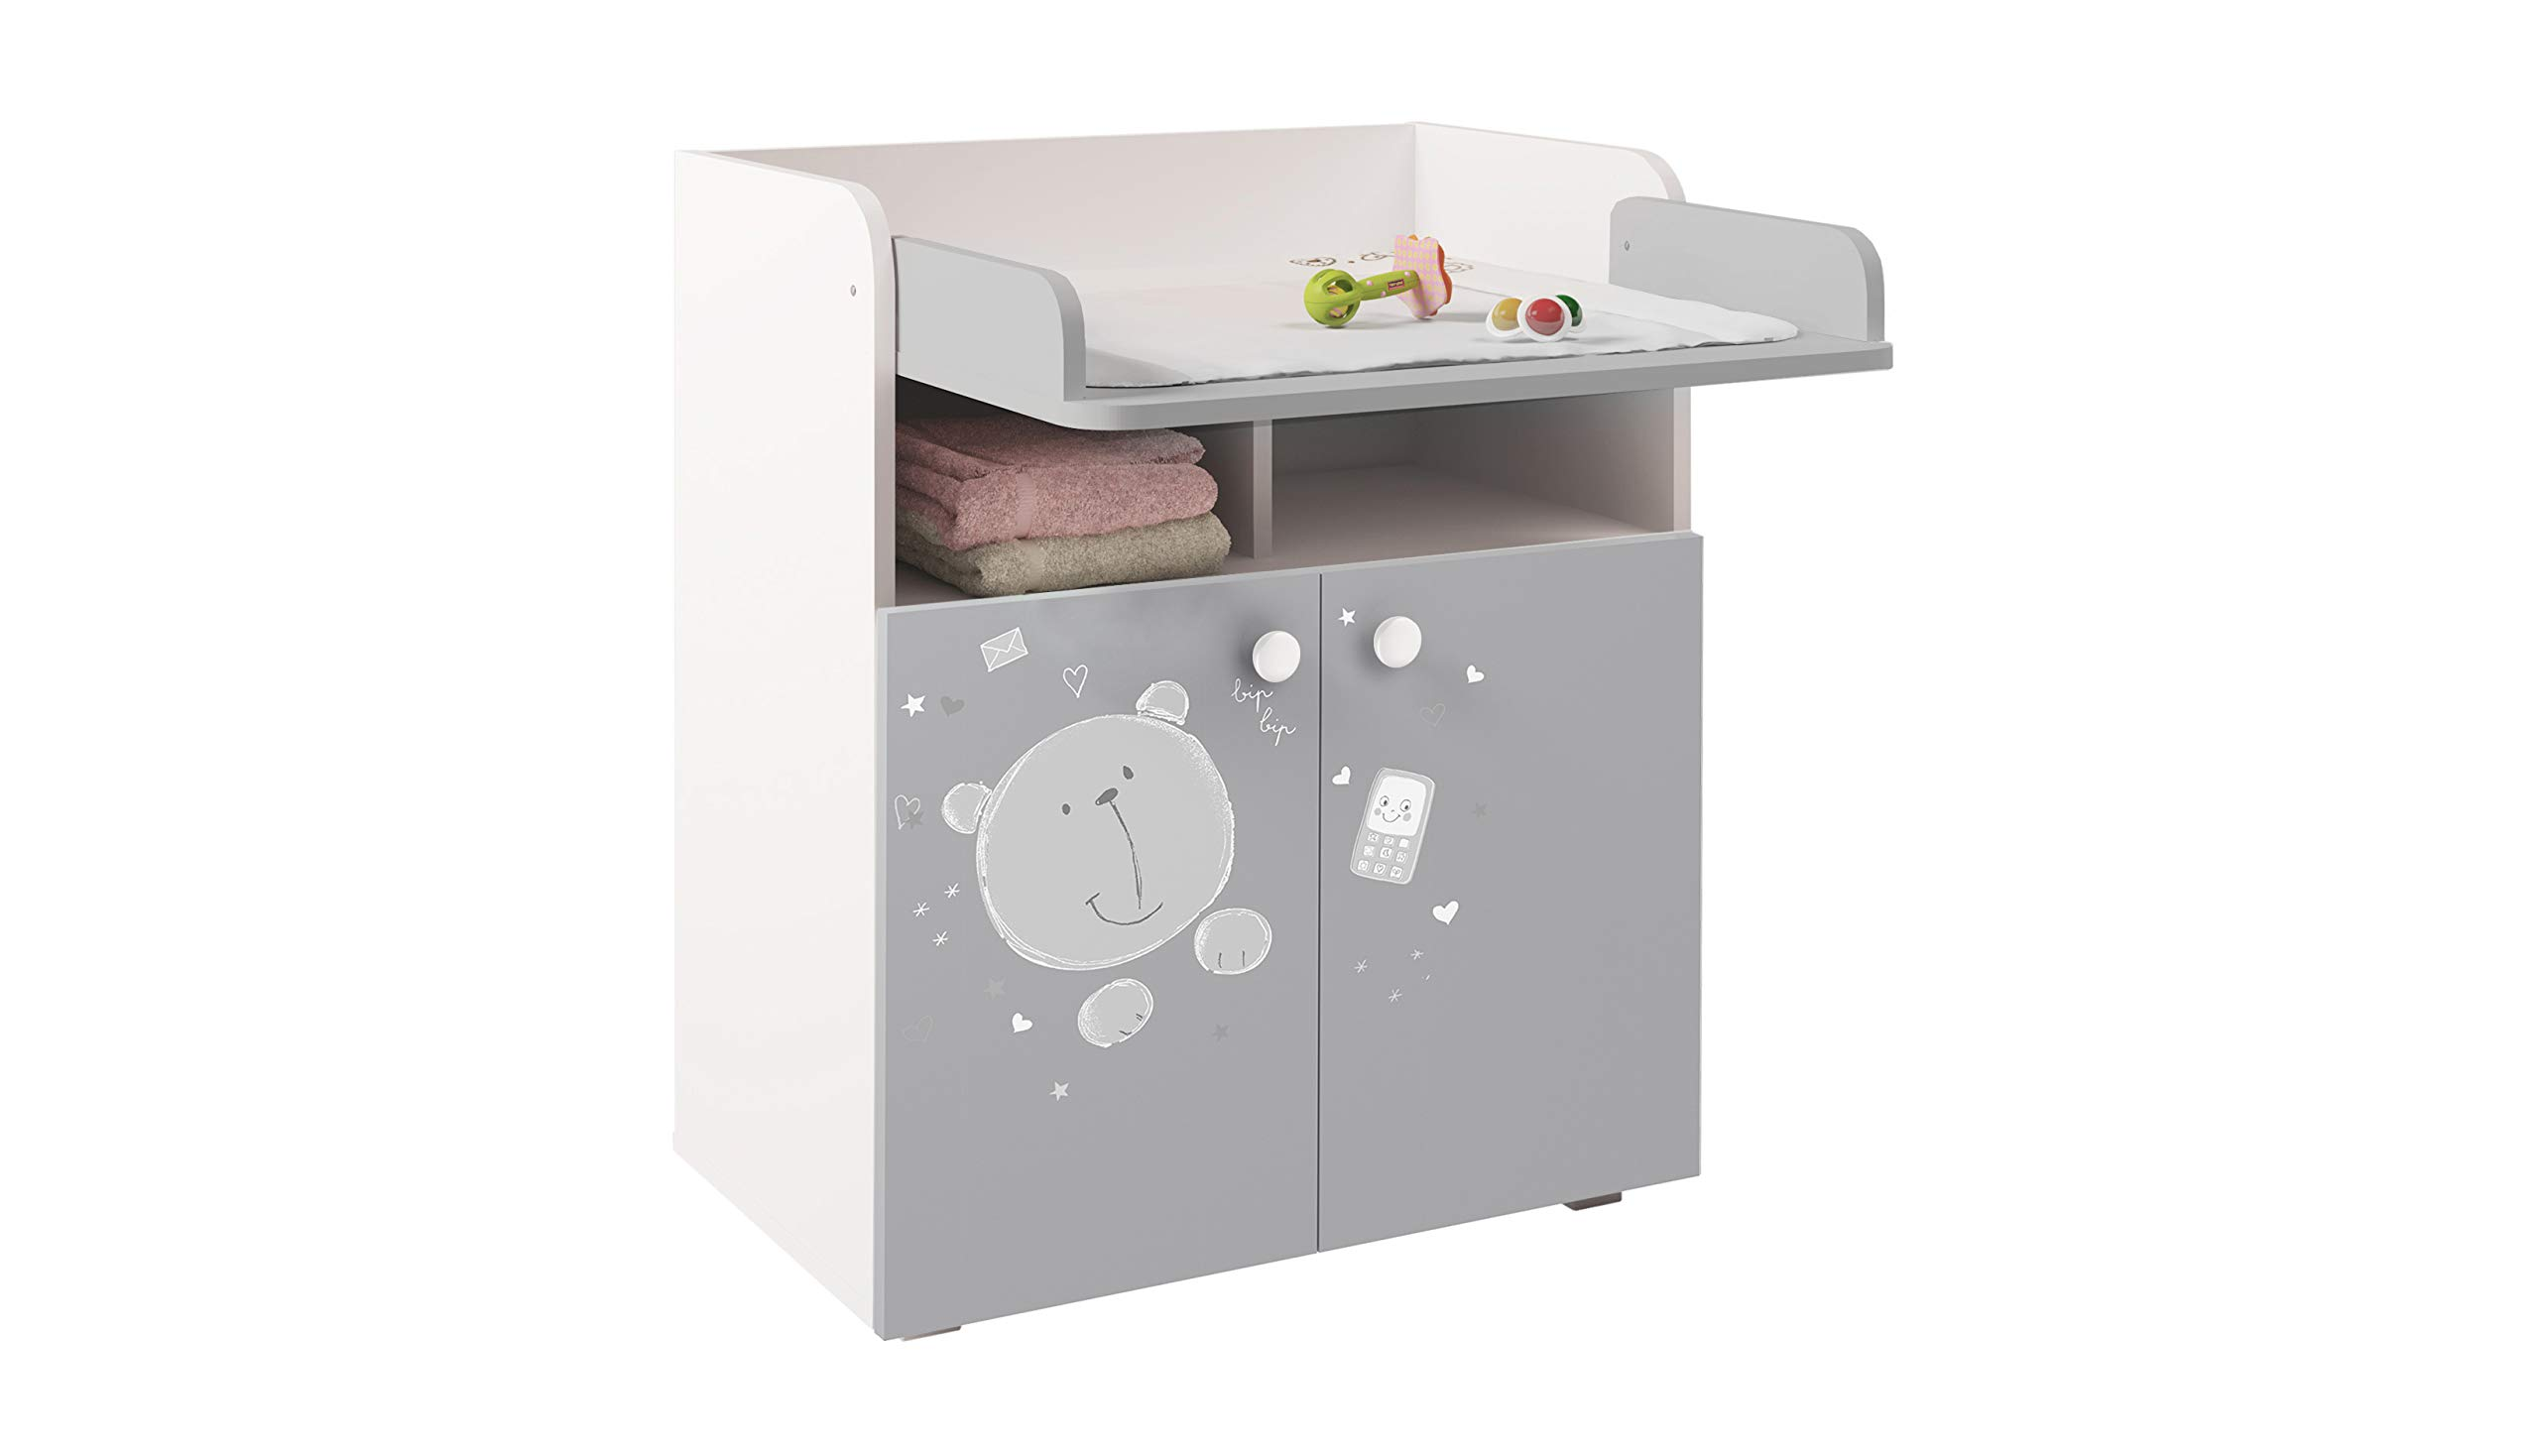 Polini French, Drawer Unit 1270, Teddy Print, White/Grey Kidsaw Dimensions (LxWxH): 47 x 70 x 86 cm French design Detachable changing mat leaves no marks on the dresser 2